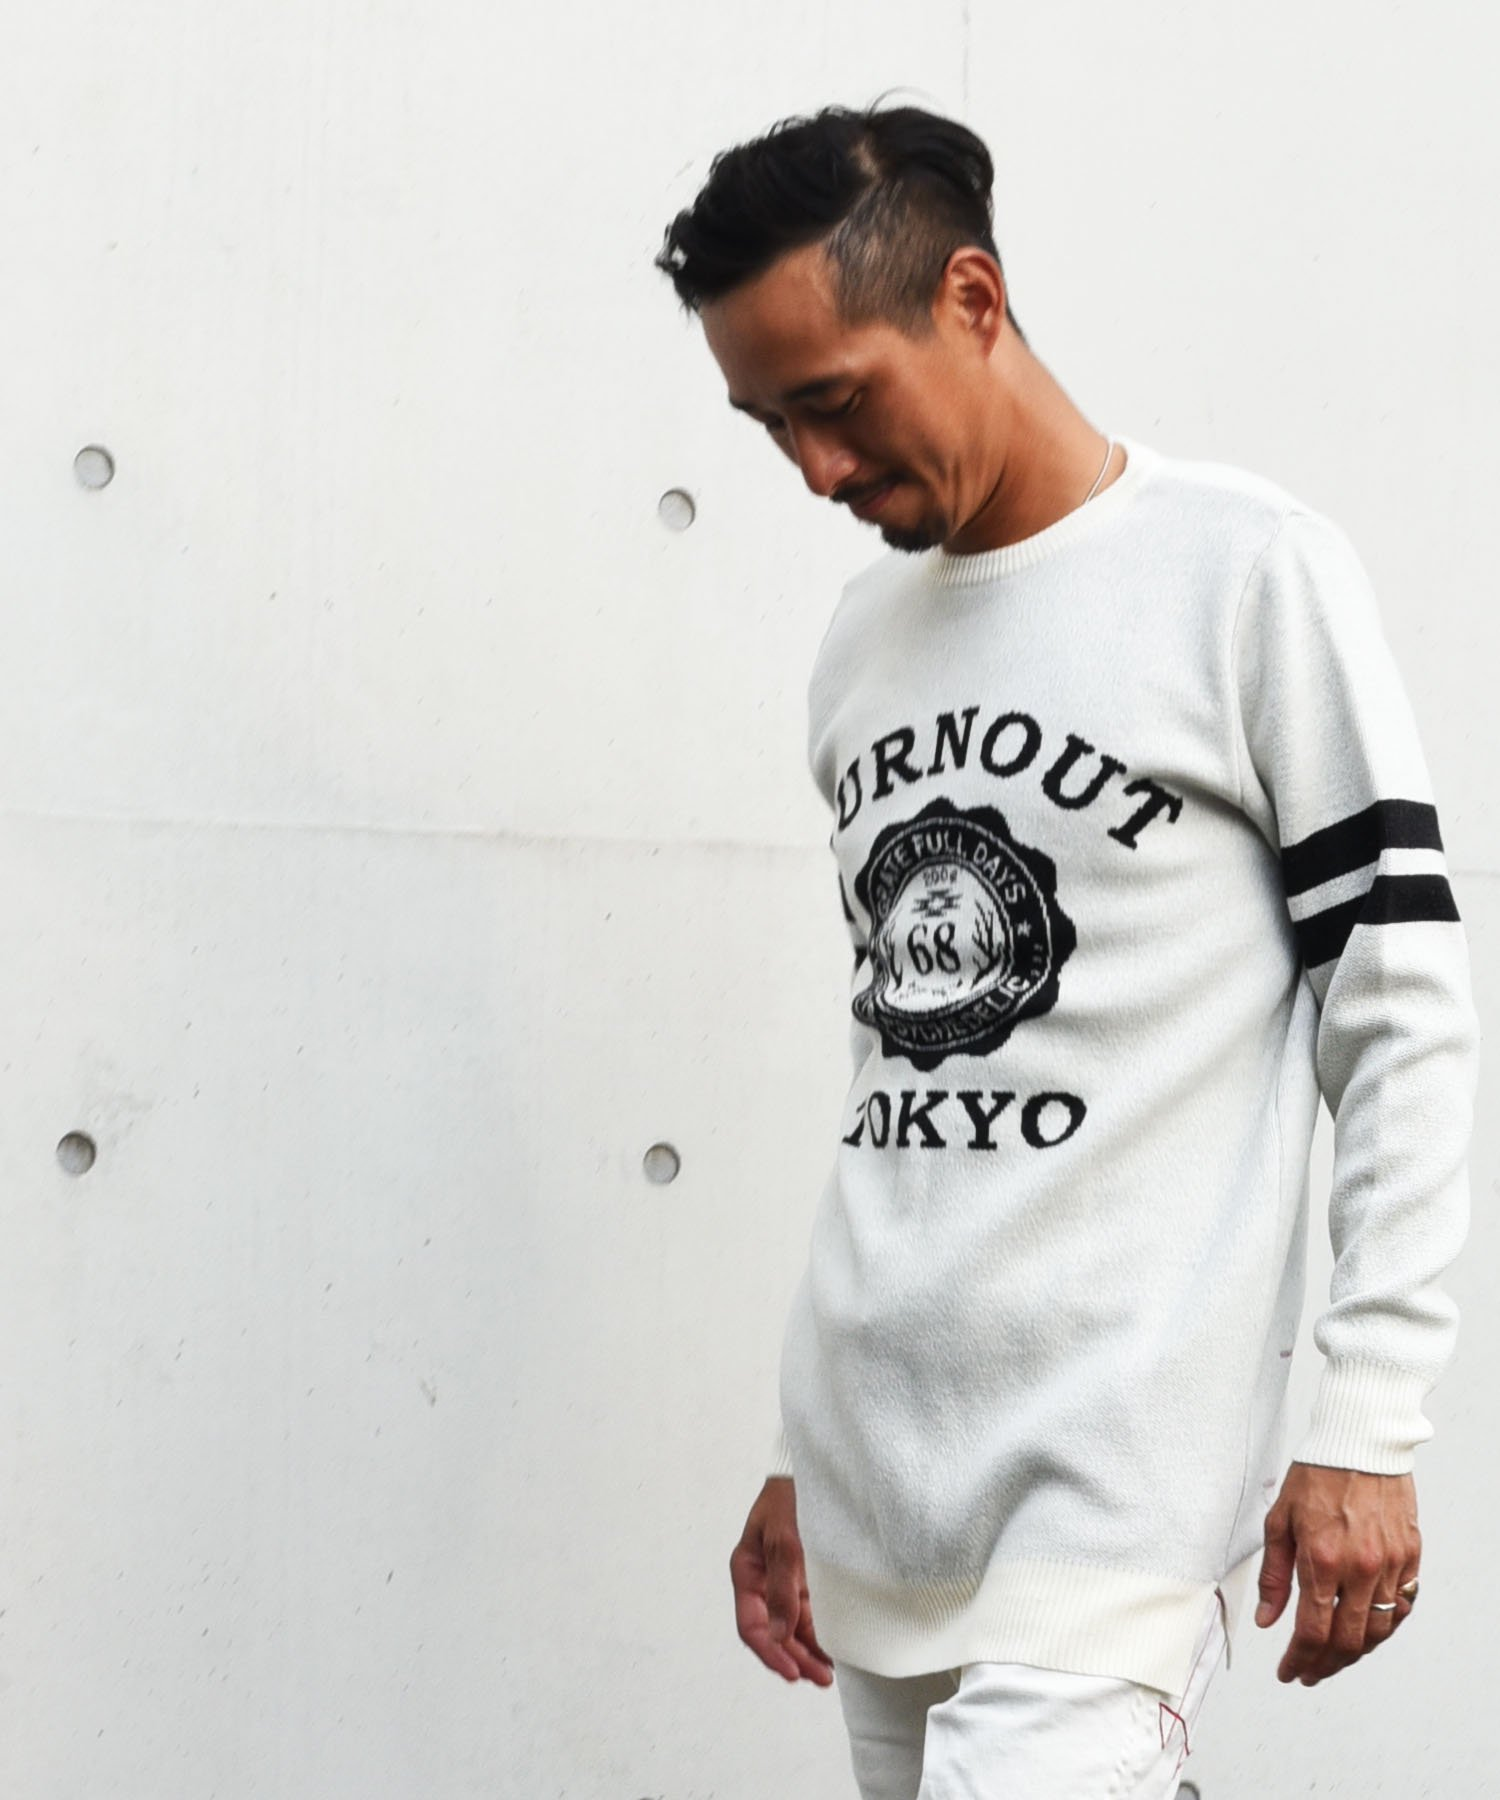 Burnout(バーンアウト)【BURNOUT COLLEGE】Jacquard Long Knit / フェザーグレー<img class='new_mark_img2' src='https://img.shop-pro.jp/img/new/icons5.gif' style='border:none;display:inline;margin:0px;padding:0px;width:auto;' />